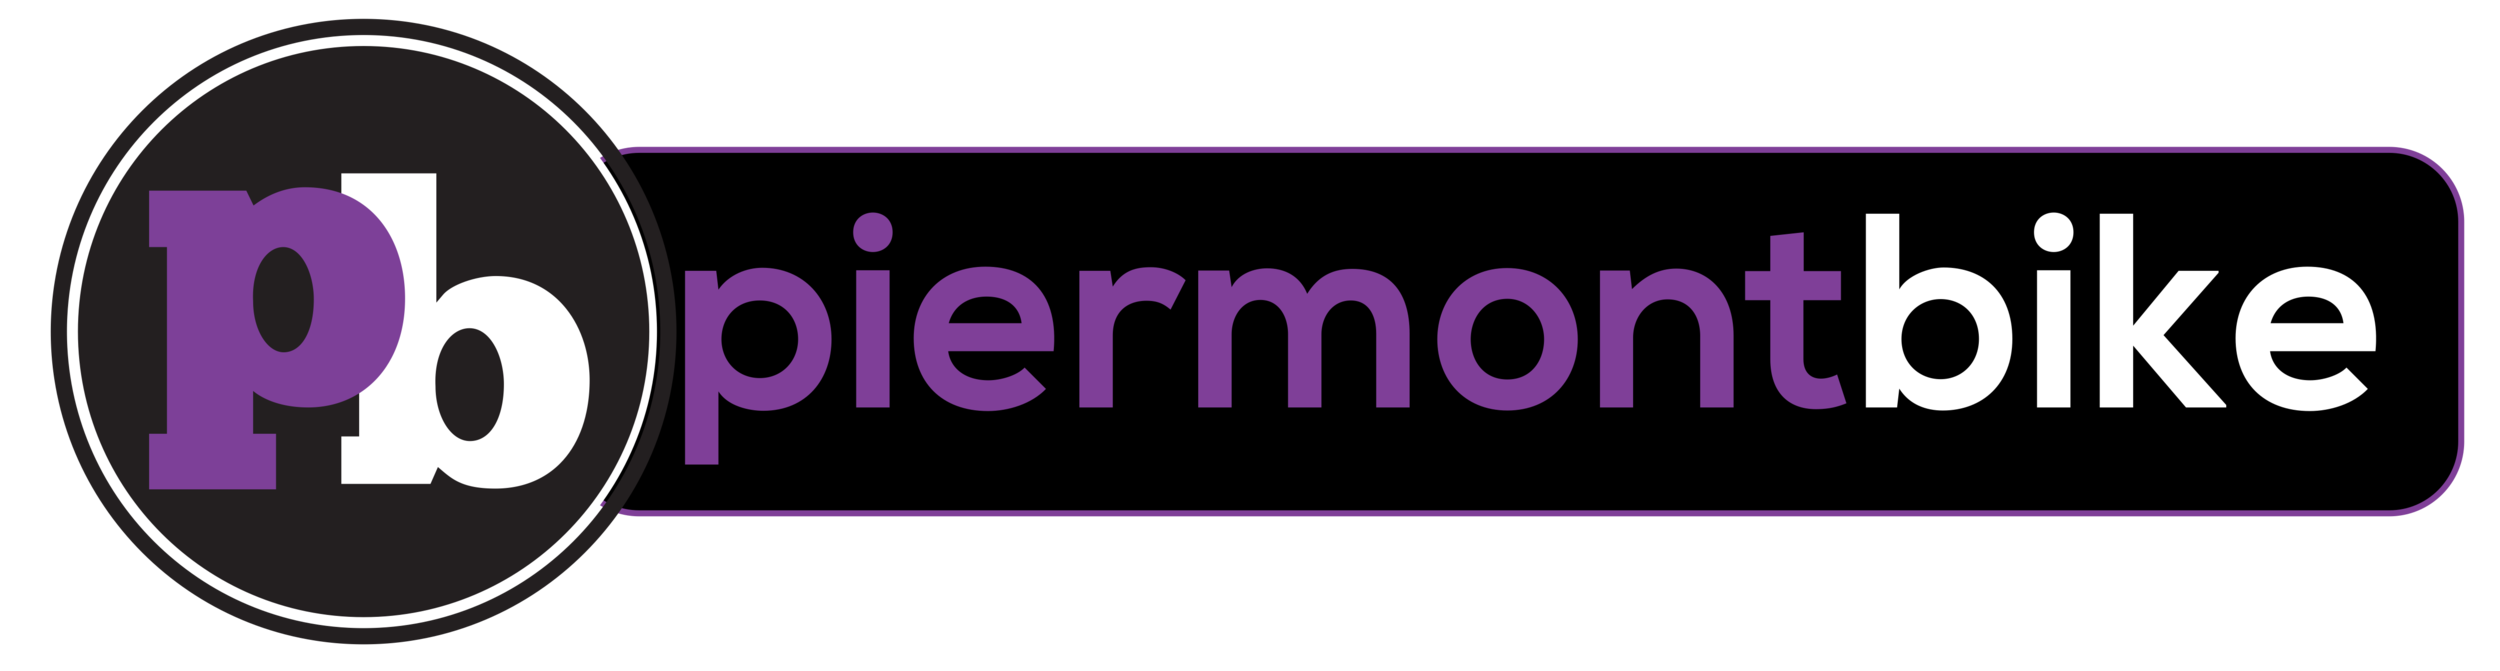 PiermontBike Logo.png